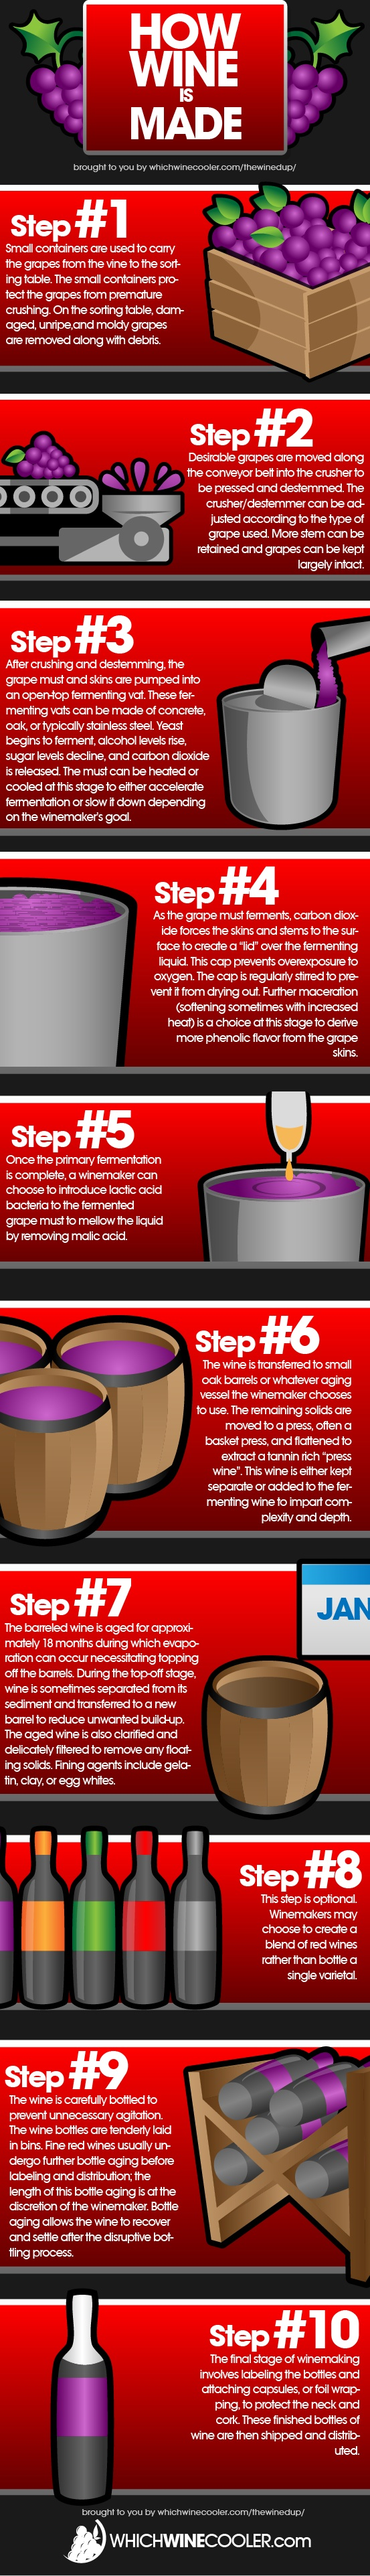 How To Make Red Wine In A 10 Step Infographic Wine Drinks Wine Facts Wine And Beer